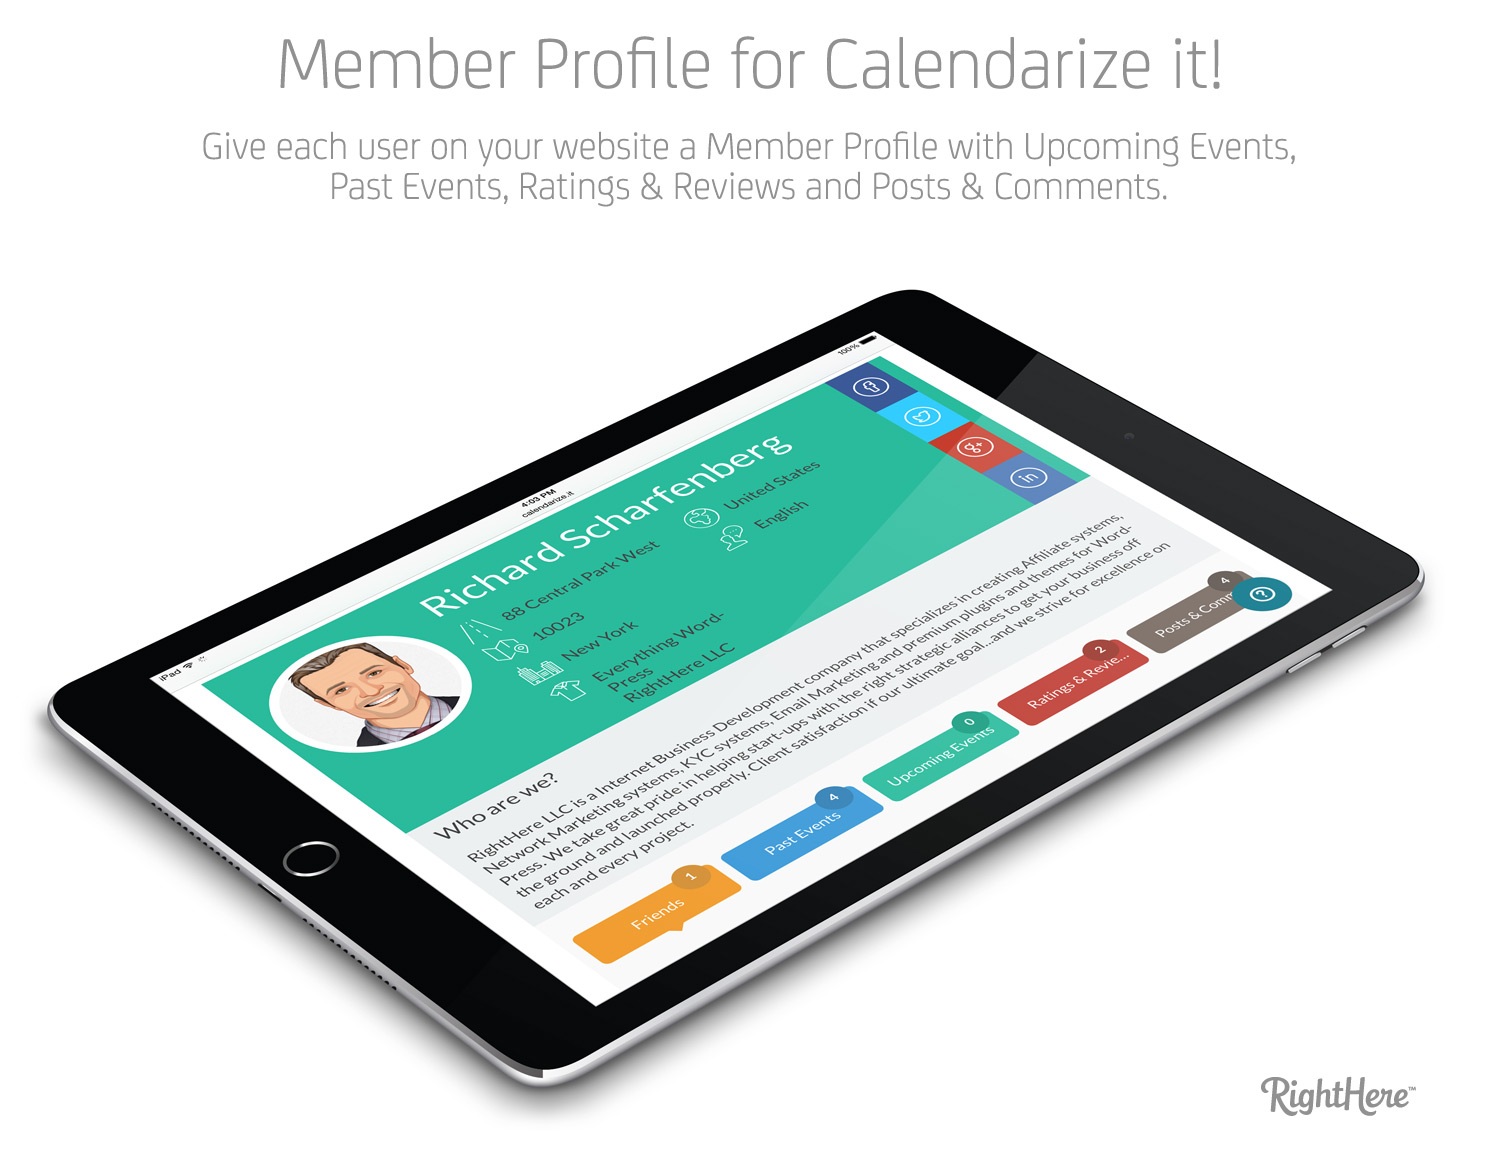 Member Profile for Calendarize it! - Responsive layout works on all devices